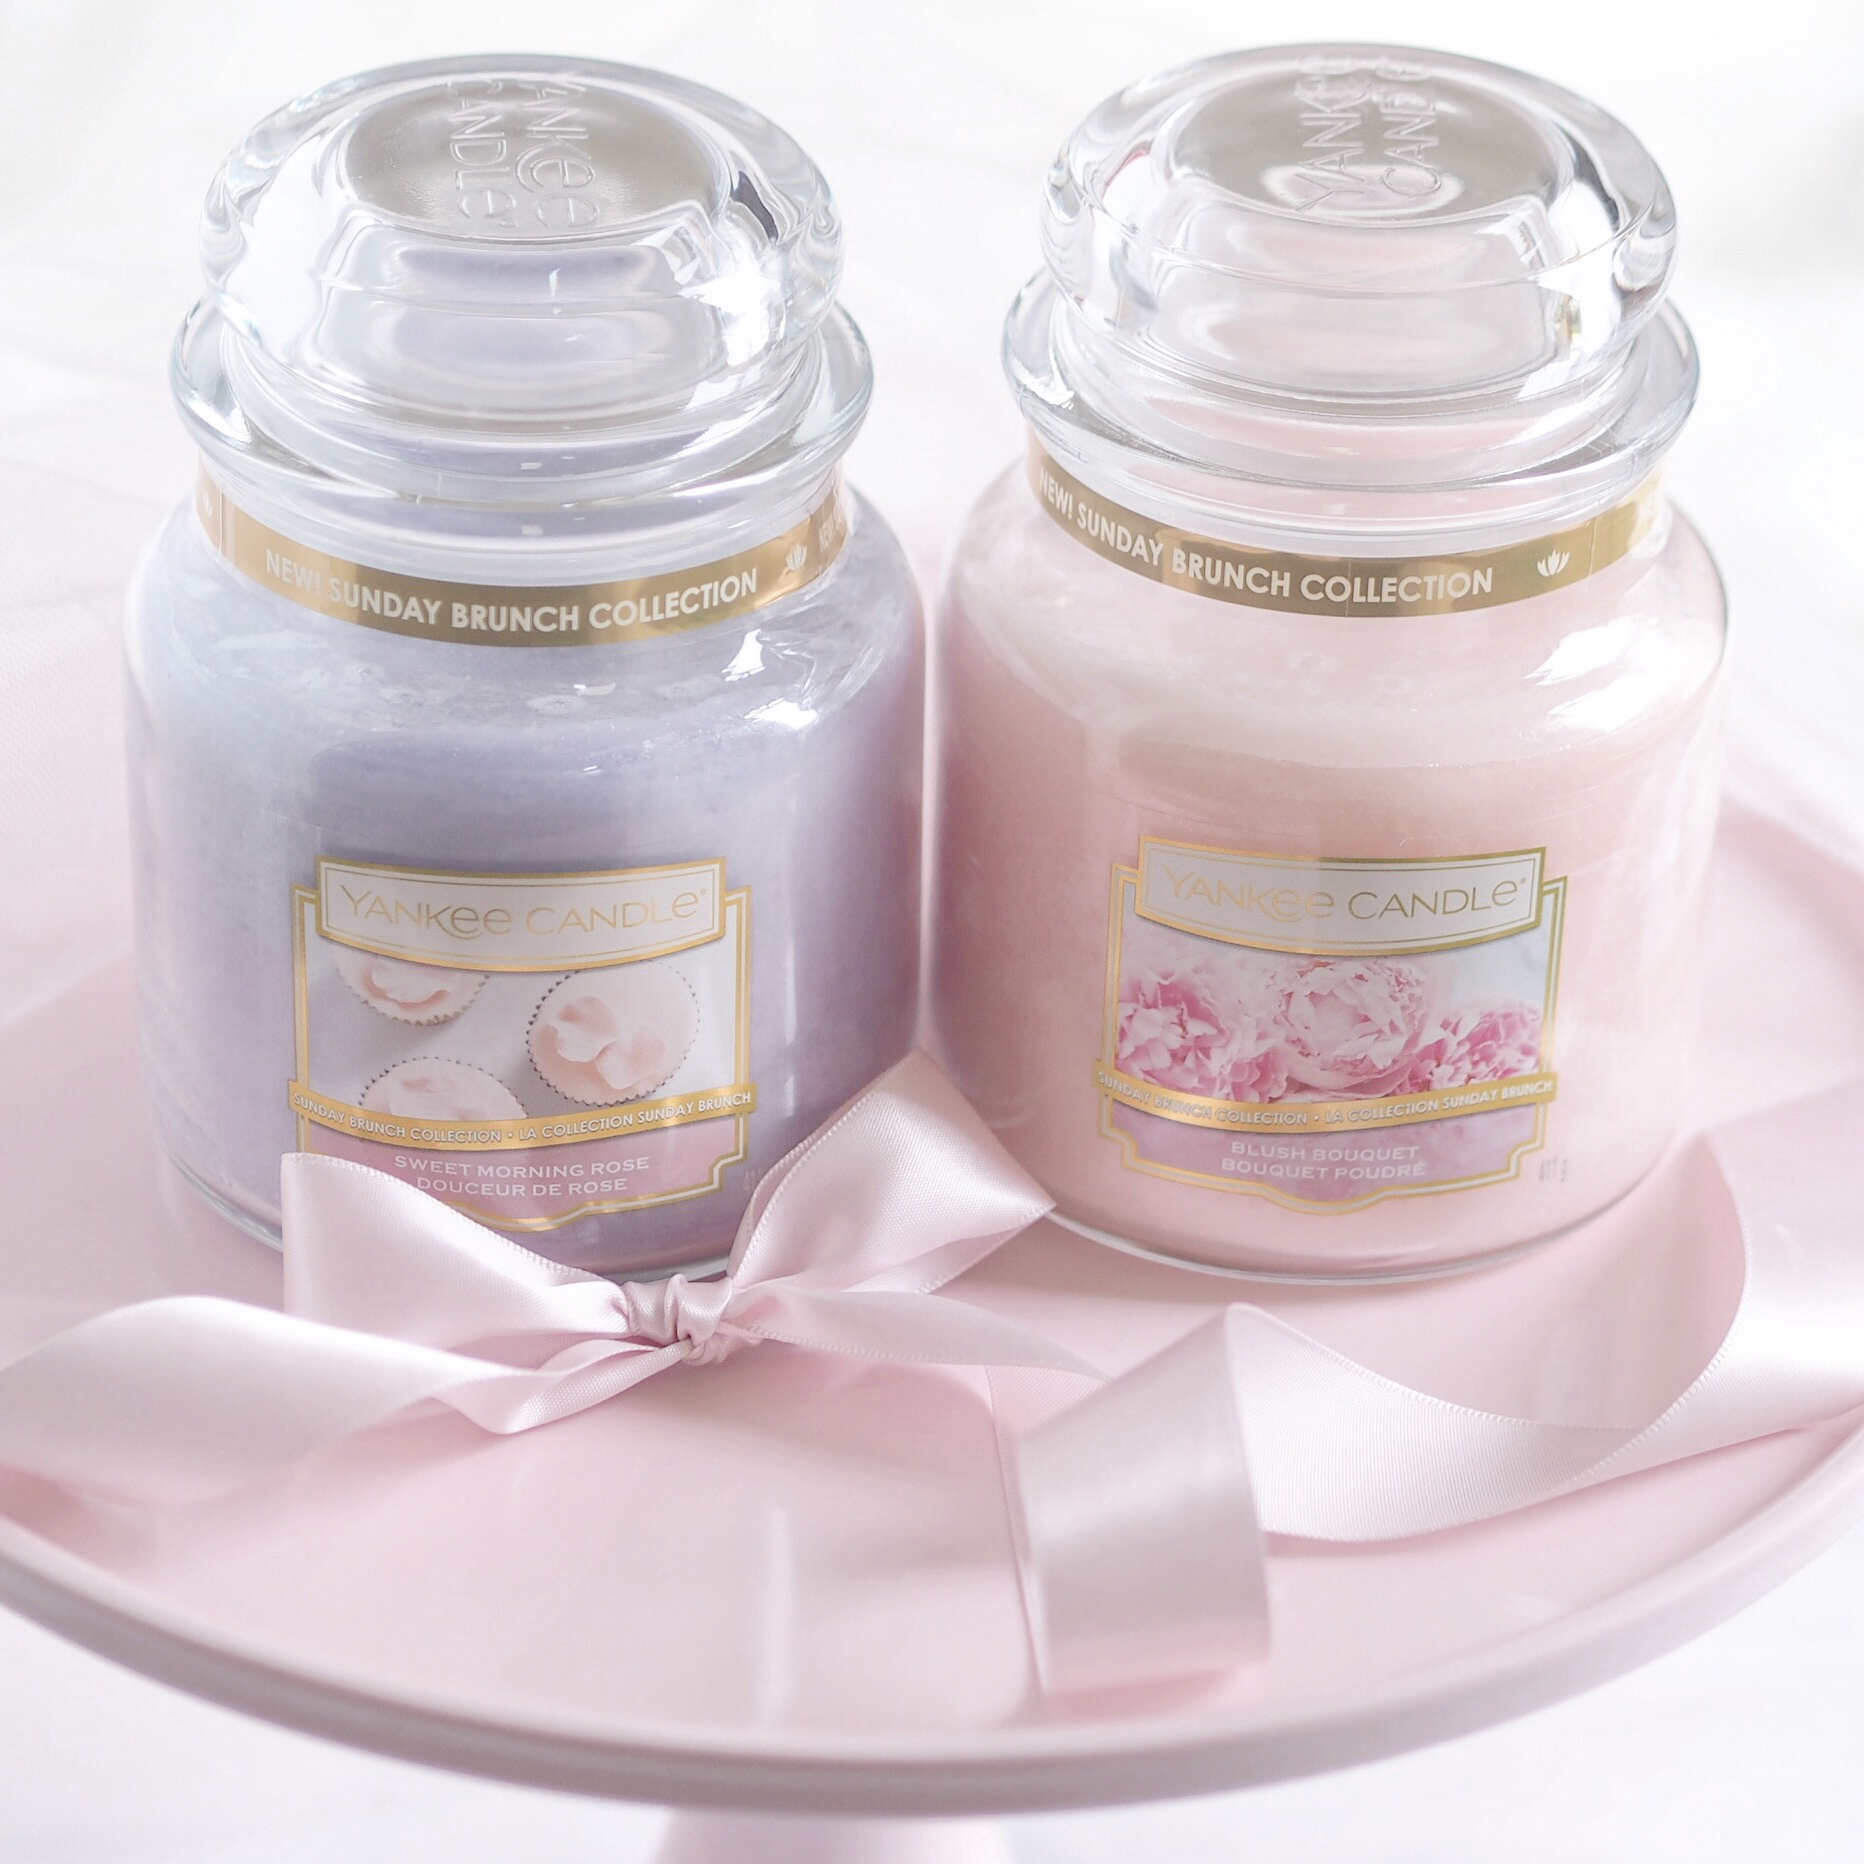 Sweet Spring Scents, Yankee Candle Sunday Brunch Collection | Love Catherine